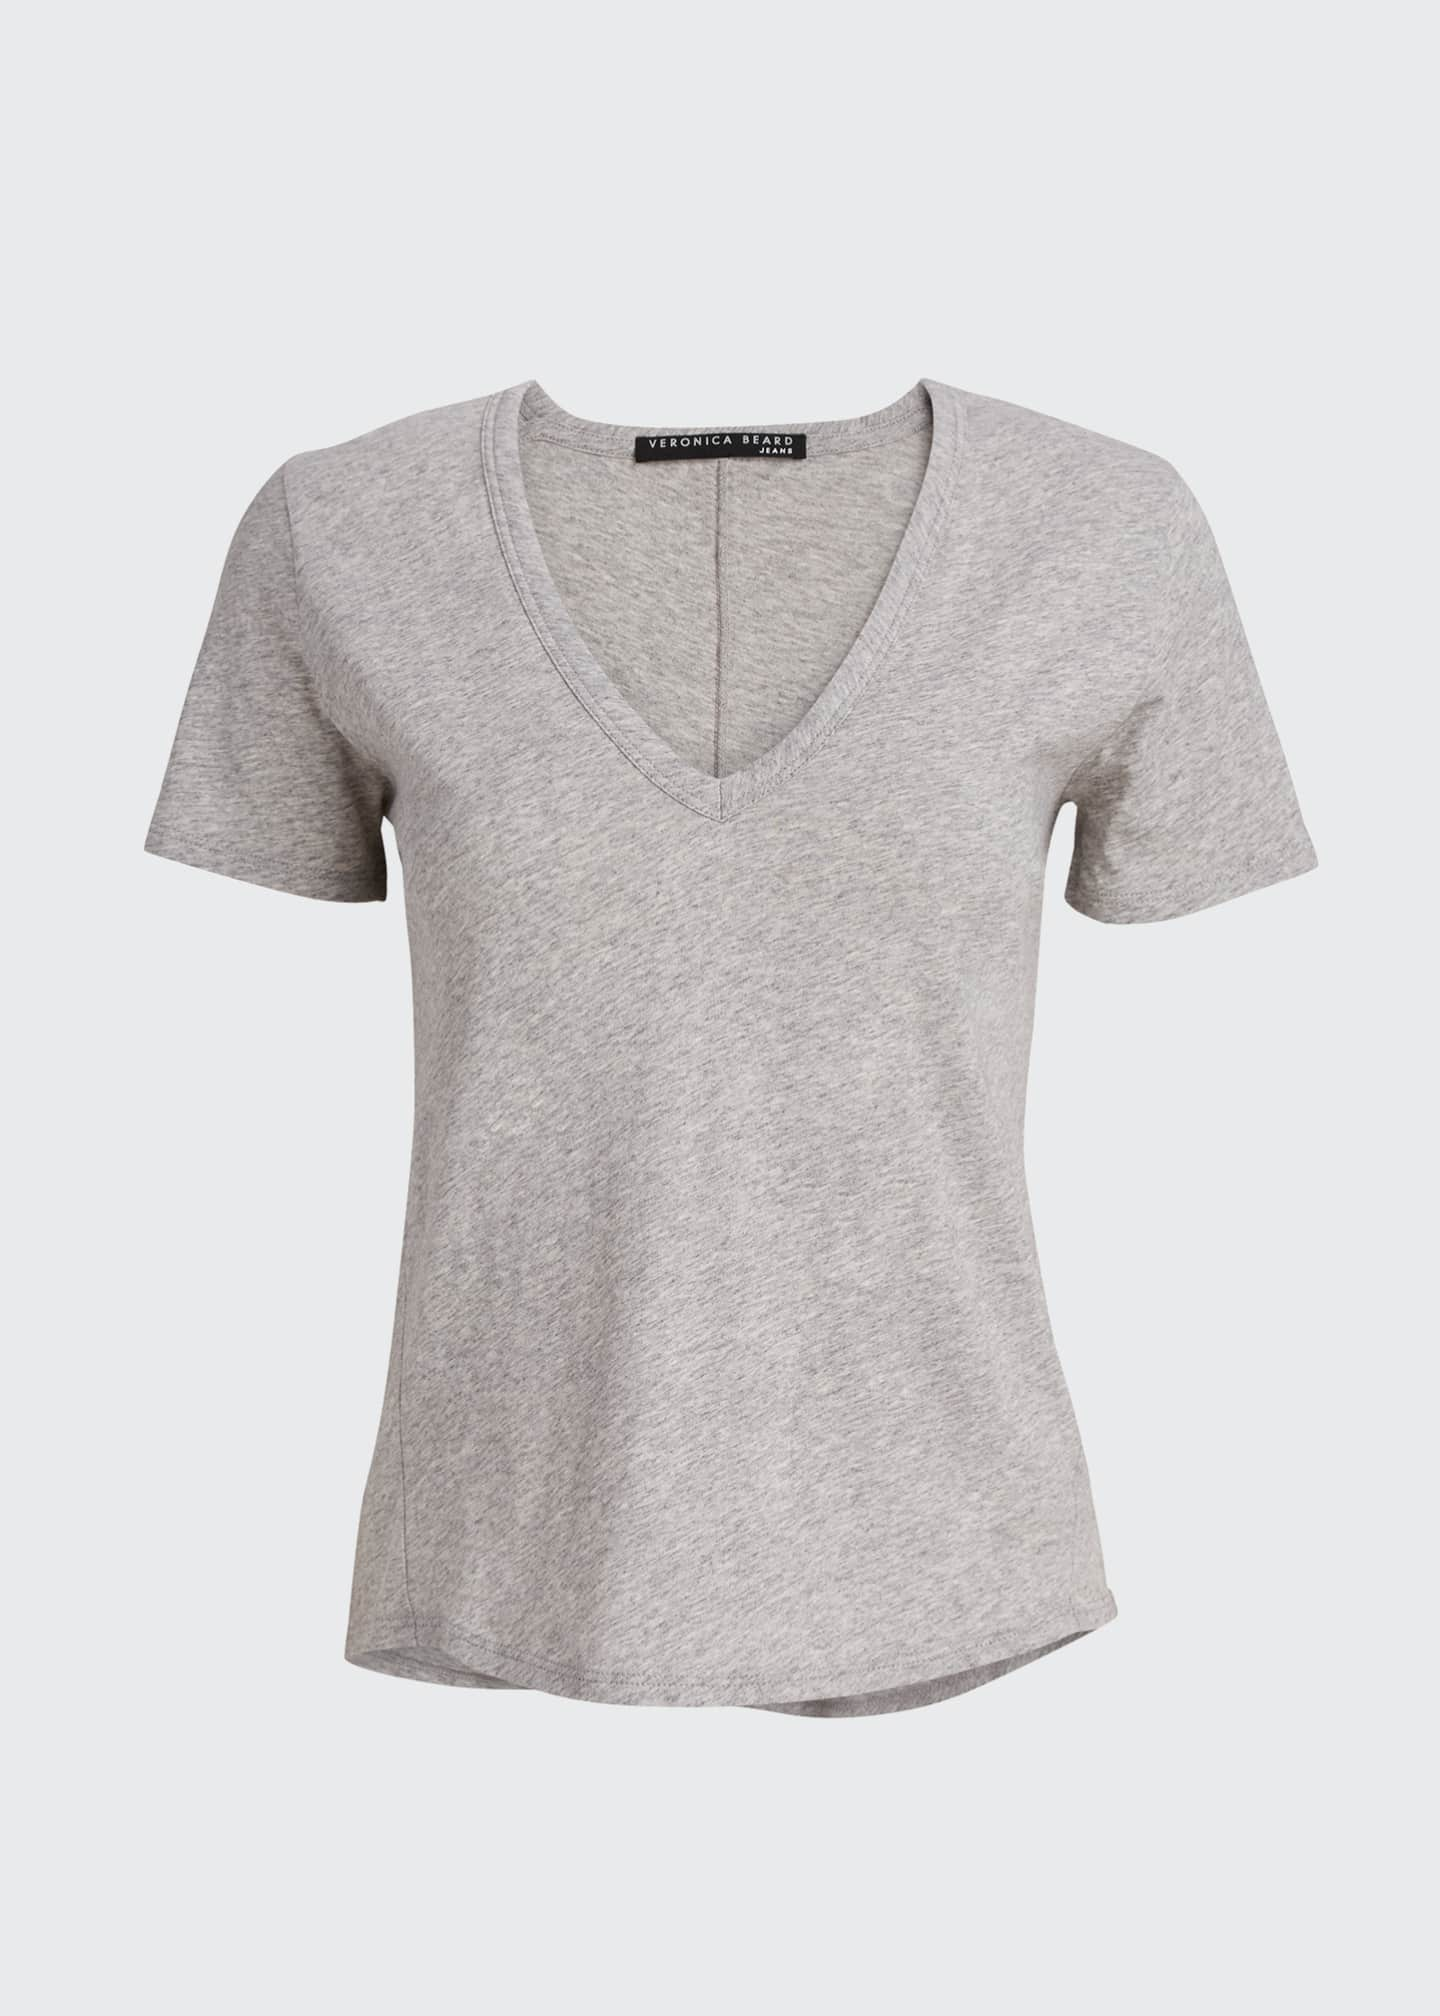 Image 5 of 5: Cindy V-Neck Short-Sleeve Tee